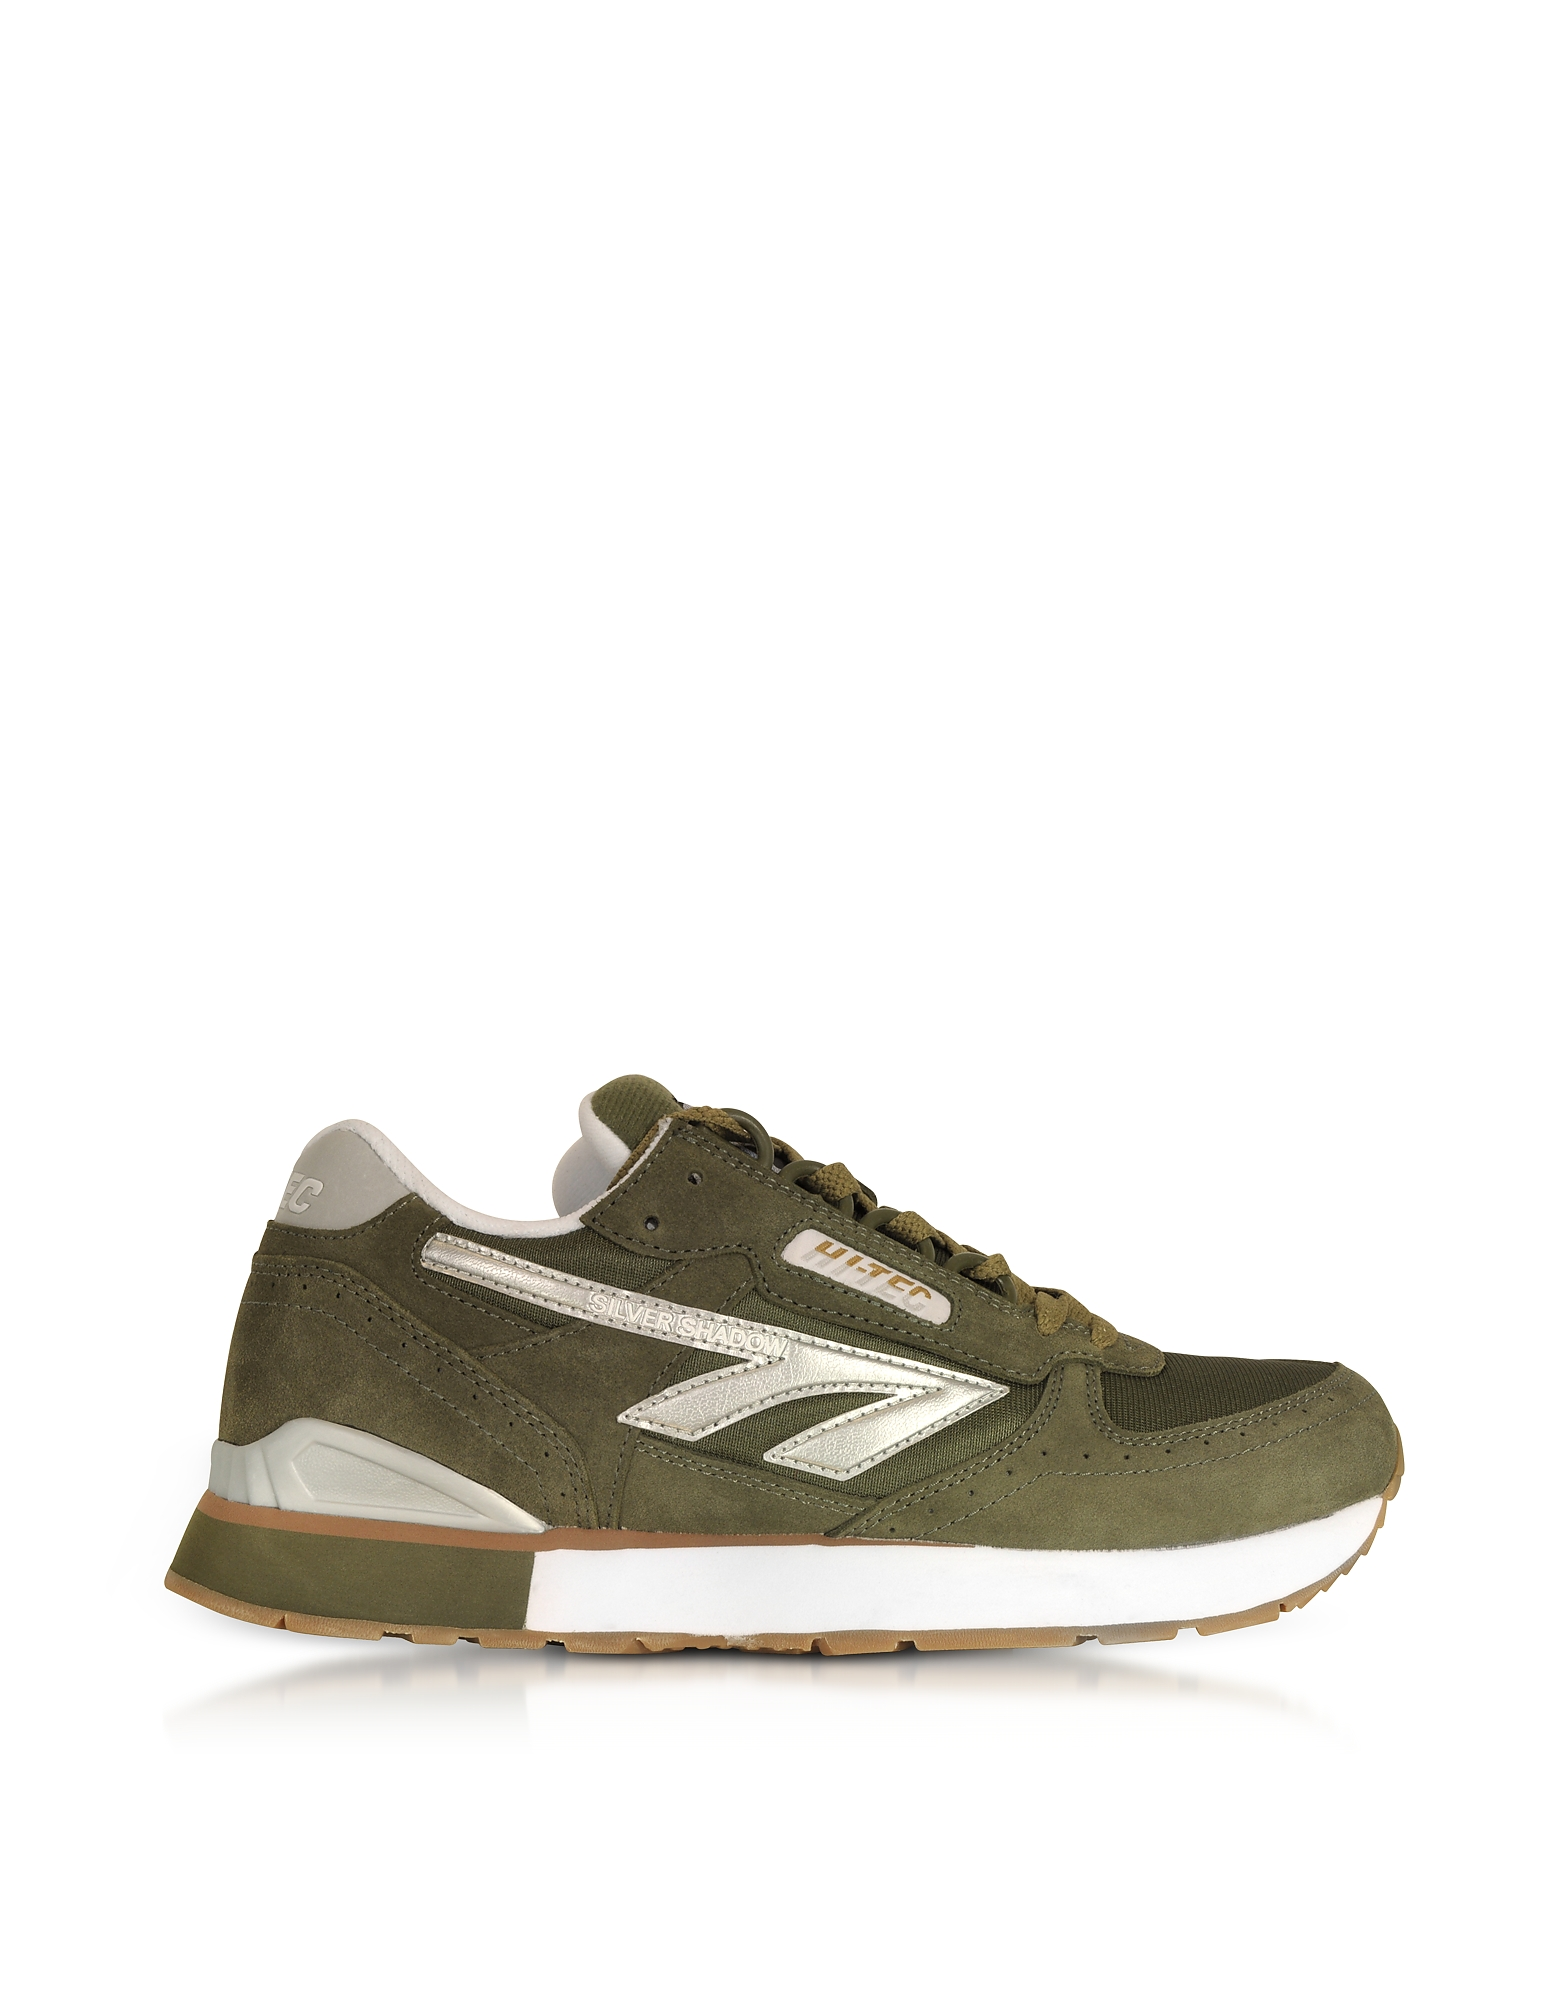 Image of Hi-Tec Designer Shoes, Silver Shadow Olive/Silver/White Mesh and Suede Men's Trainers